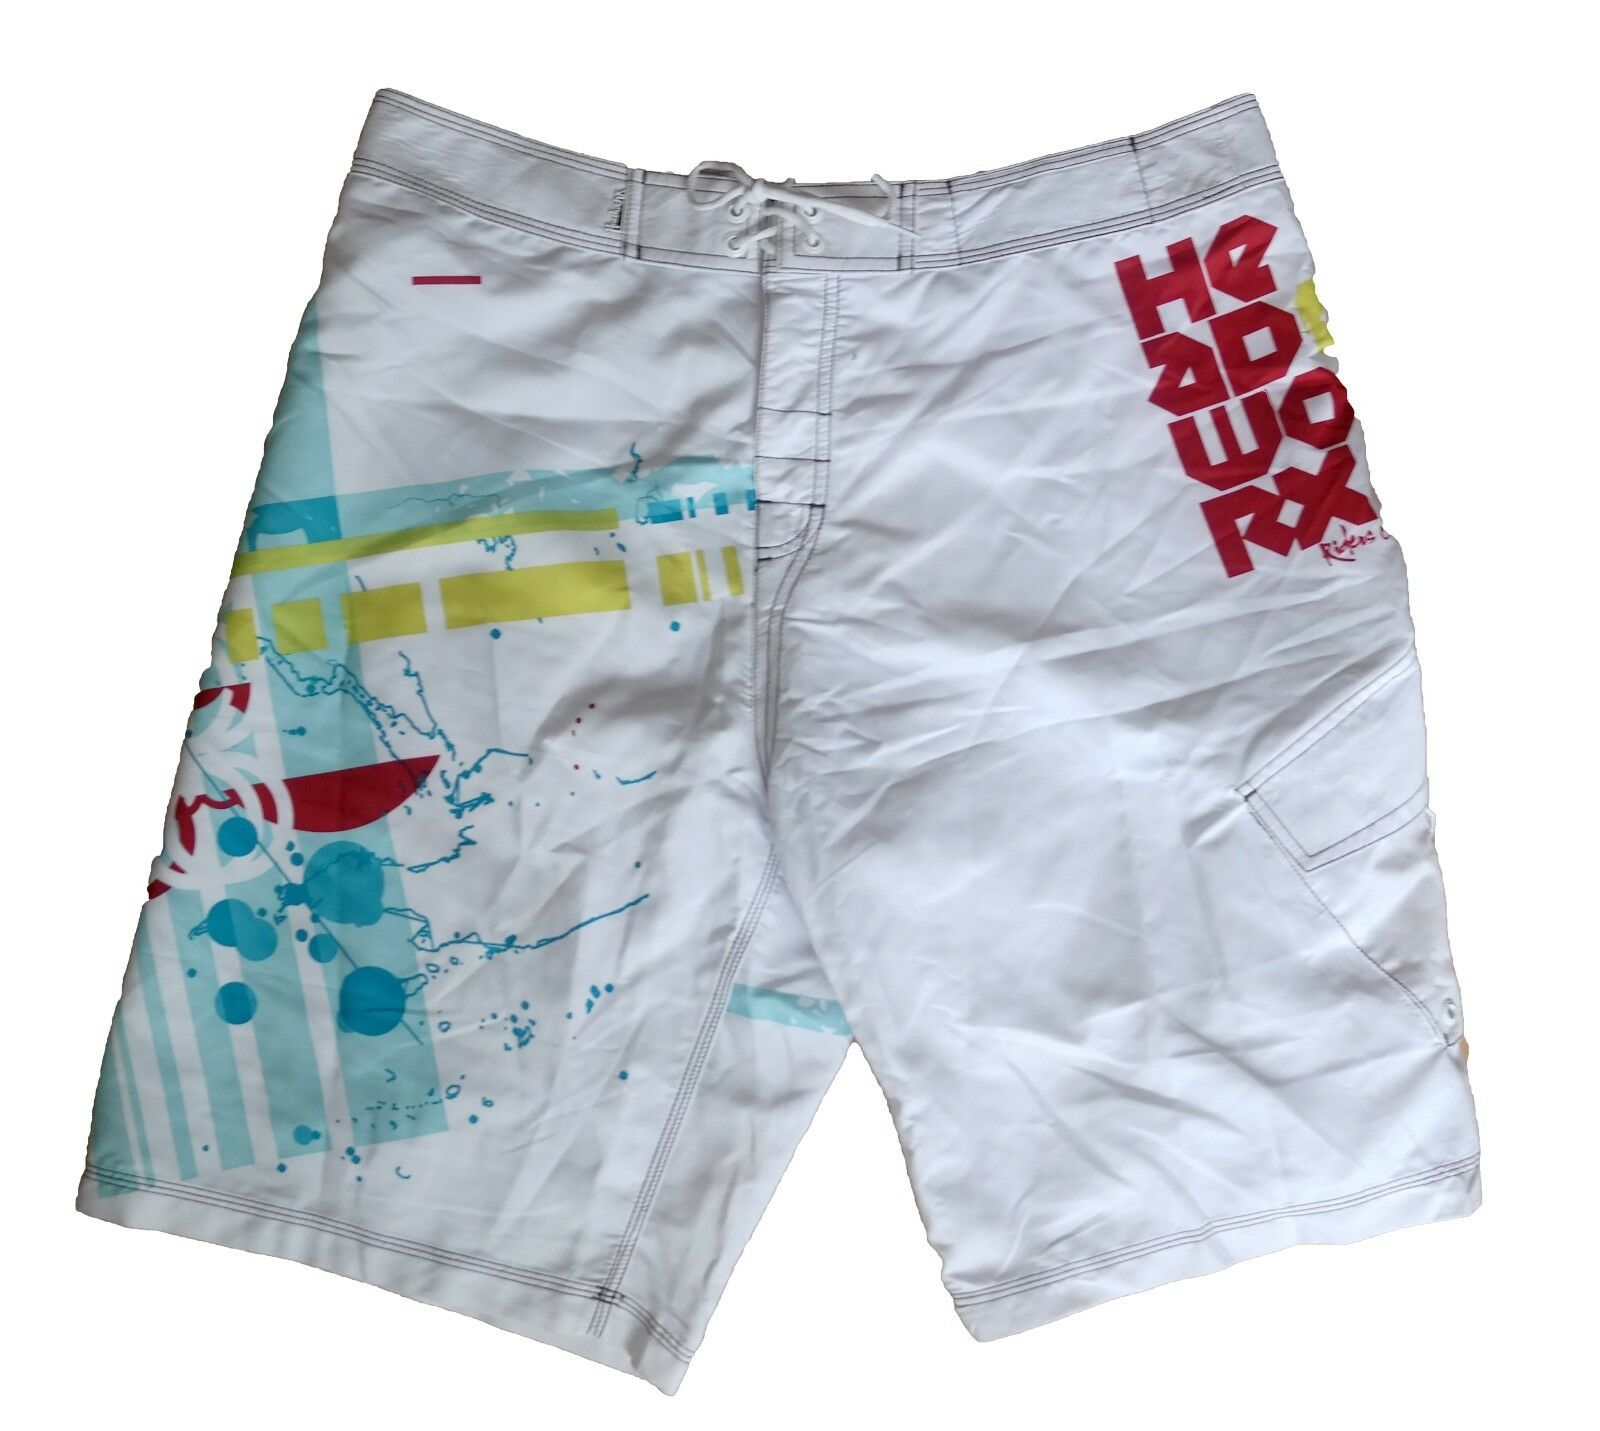 AJ'z Boardwear Headworx Board Swim shorts - Deep White - Size  XL